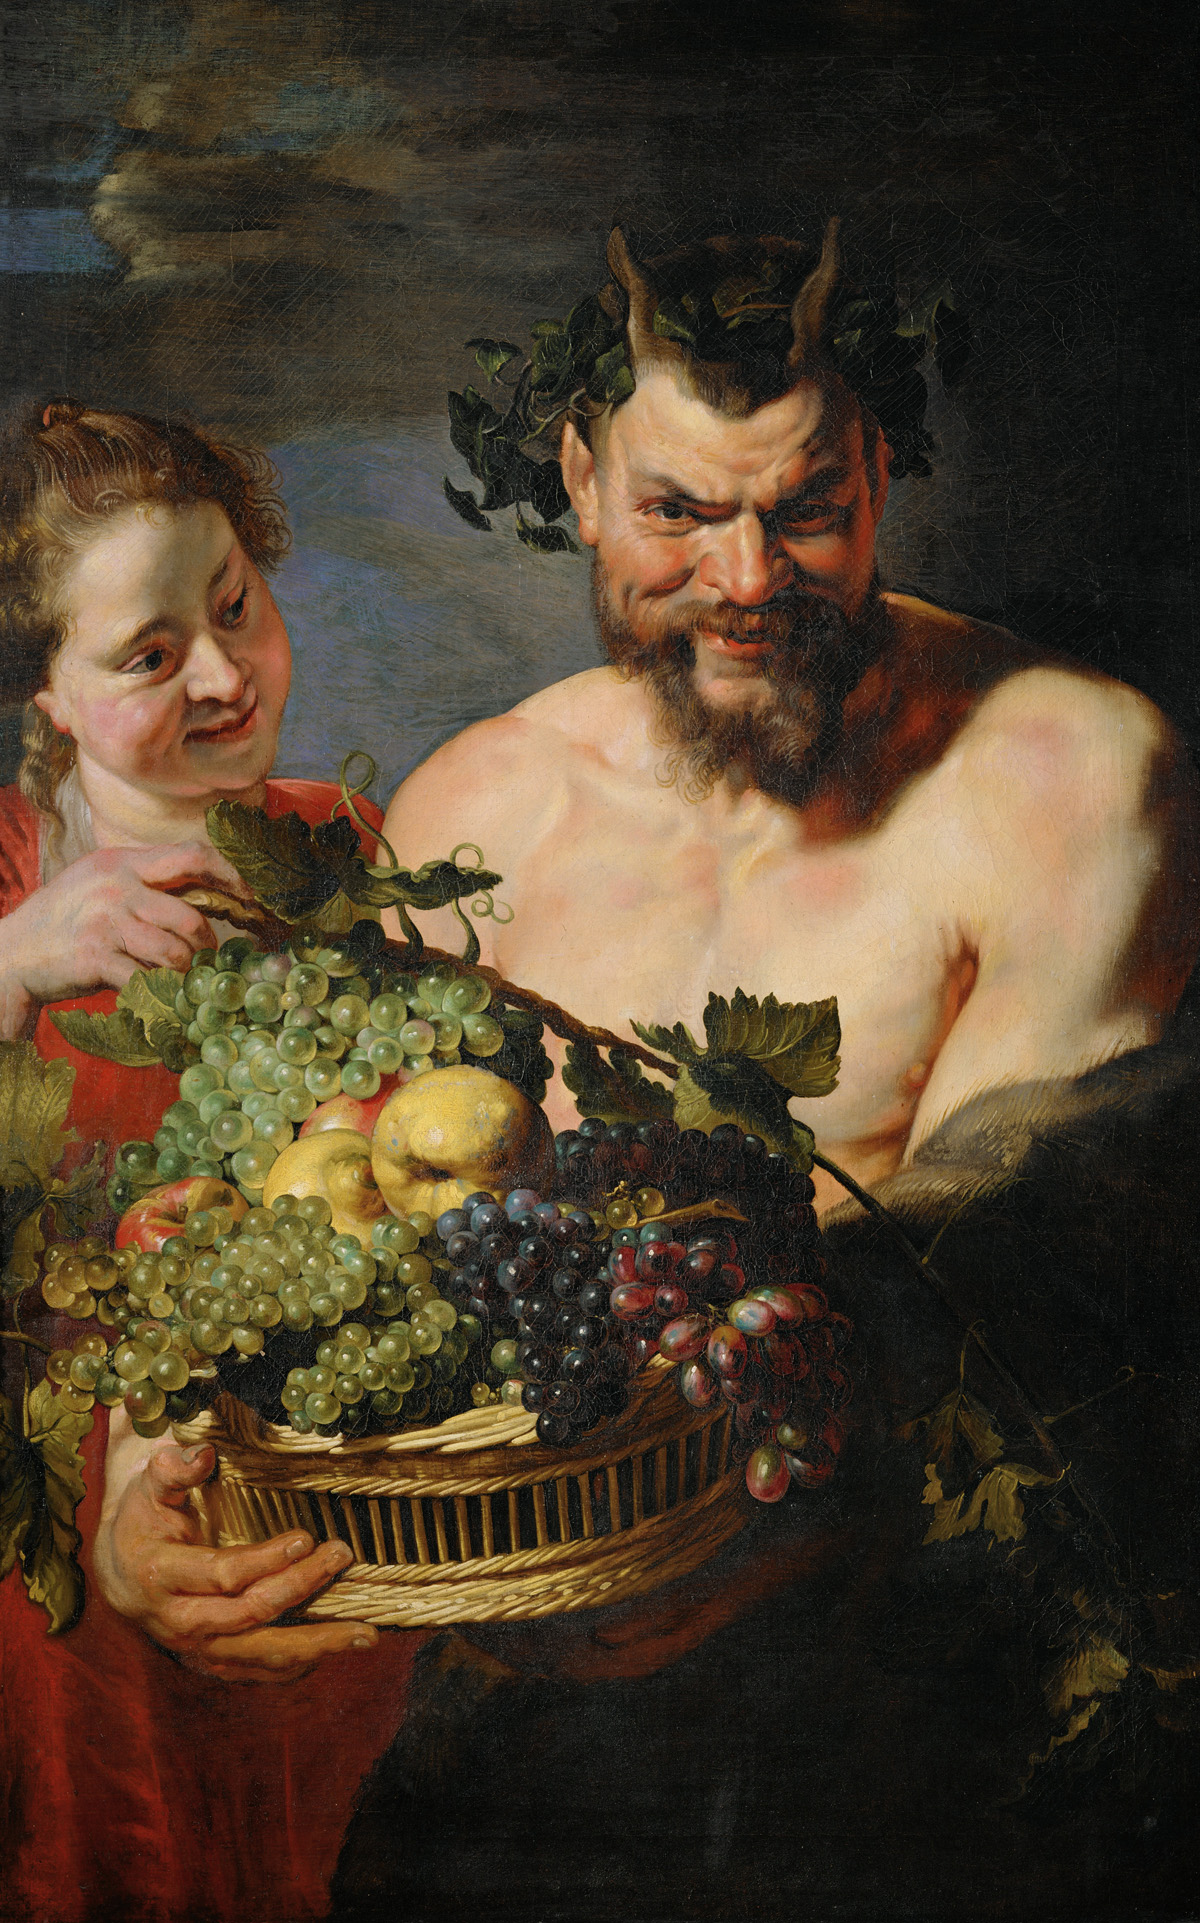 Satyr and Maid with Fruit Basket, by Peter Paul Rubens, c. 1615. Residenzgalerie, Salzburg, Austria.